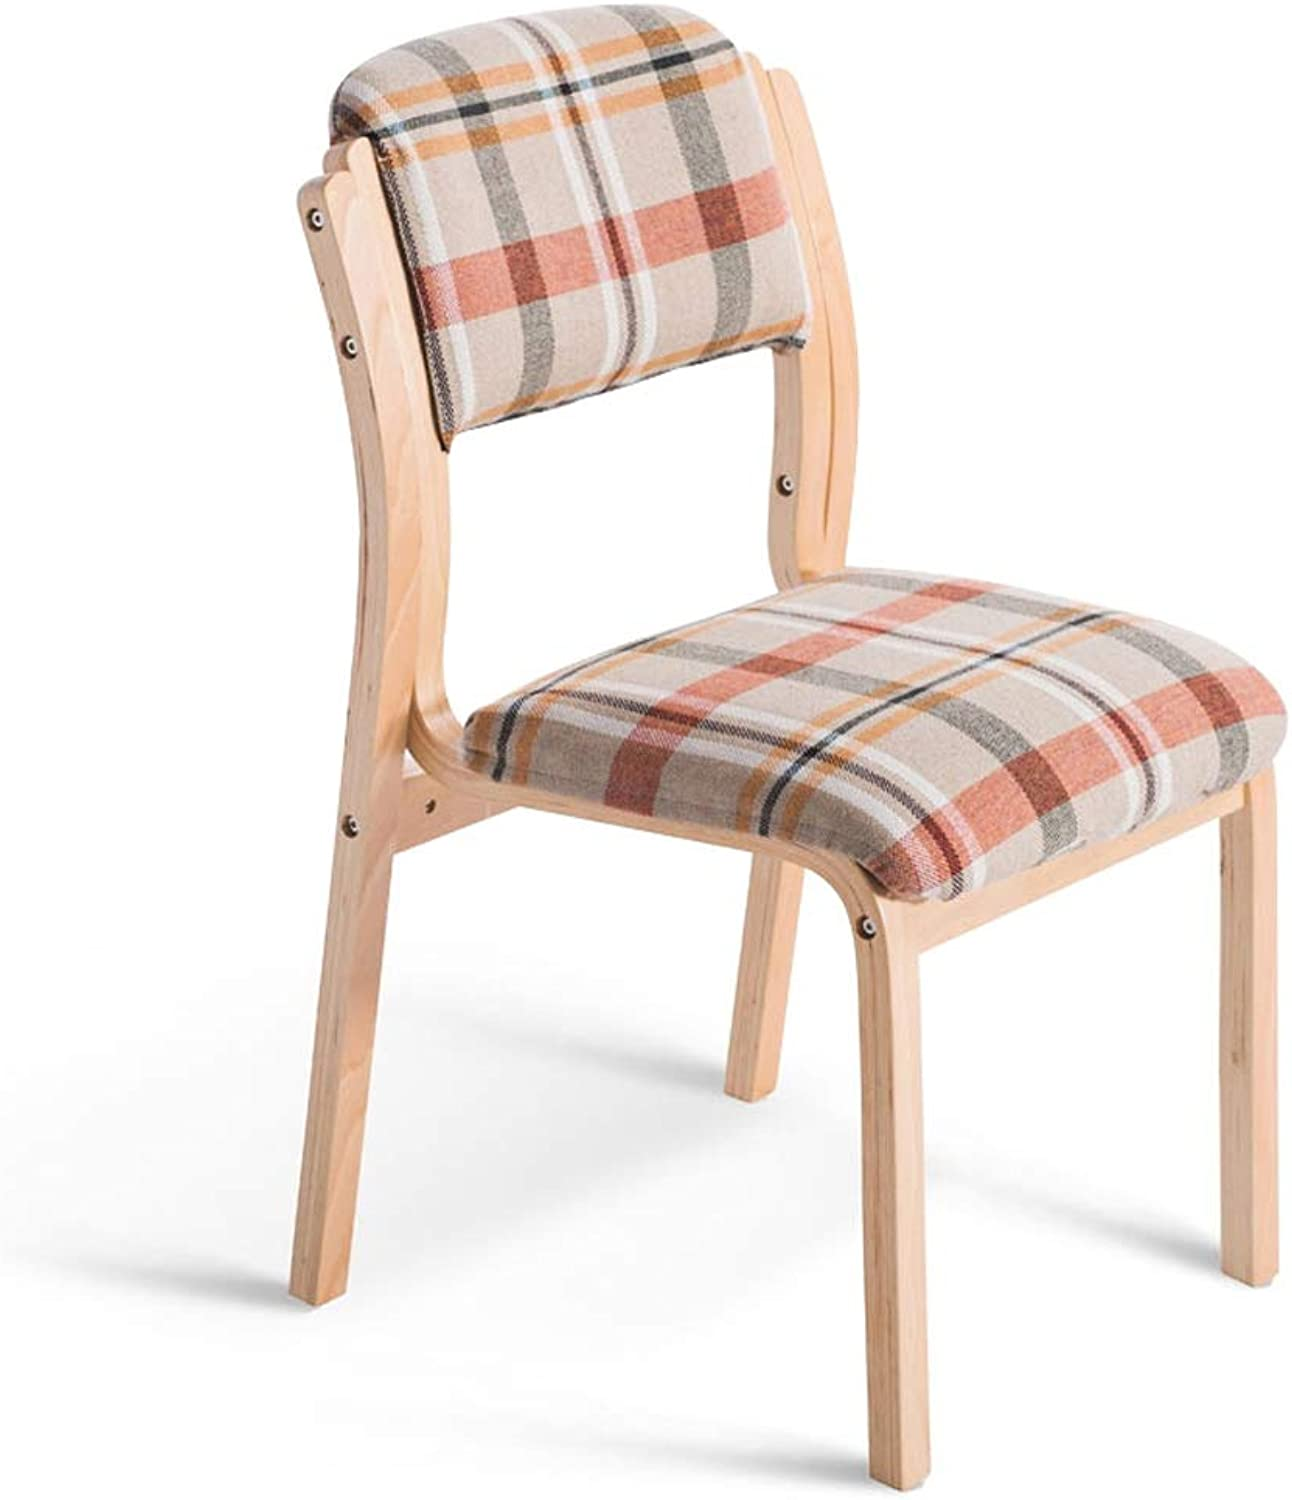 LLYU Solid Wood Casual Dining Chair, Simple Fabric Back Furniture Study Bedroom Living Room Reception Computer Chair (color   Wood color)